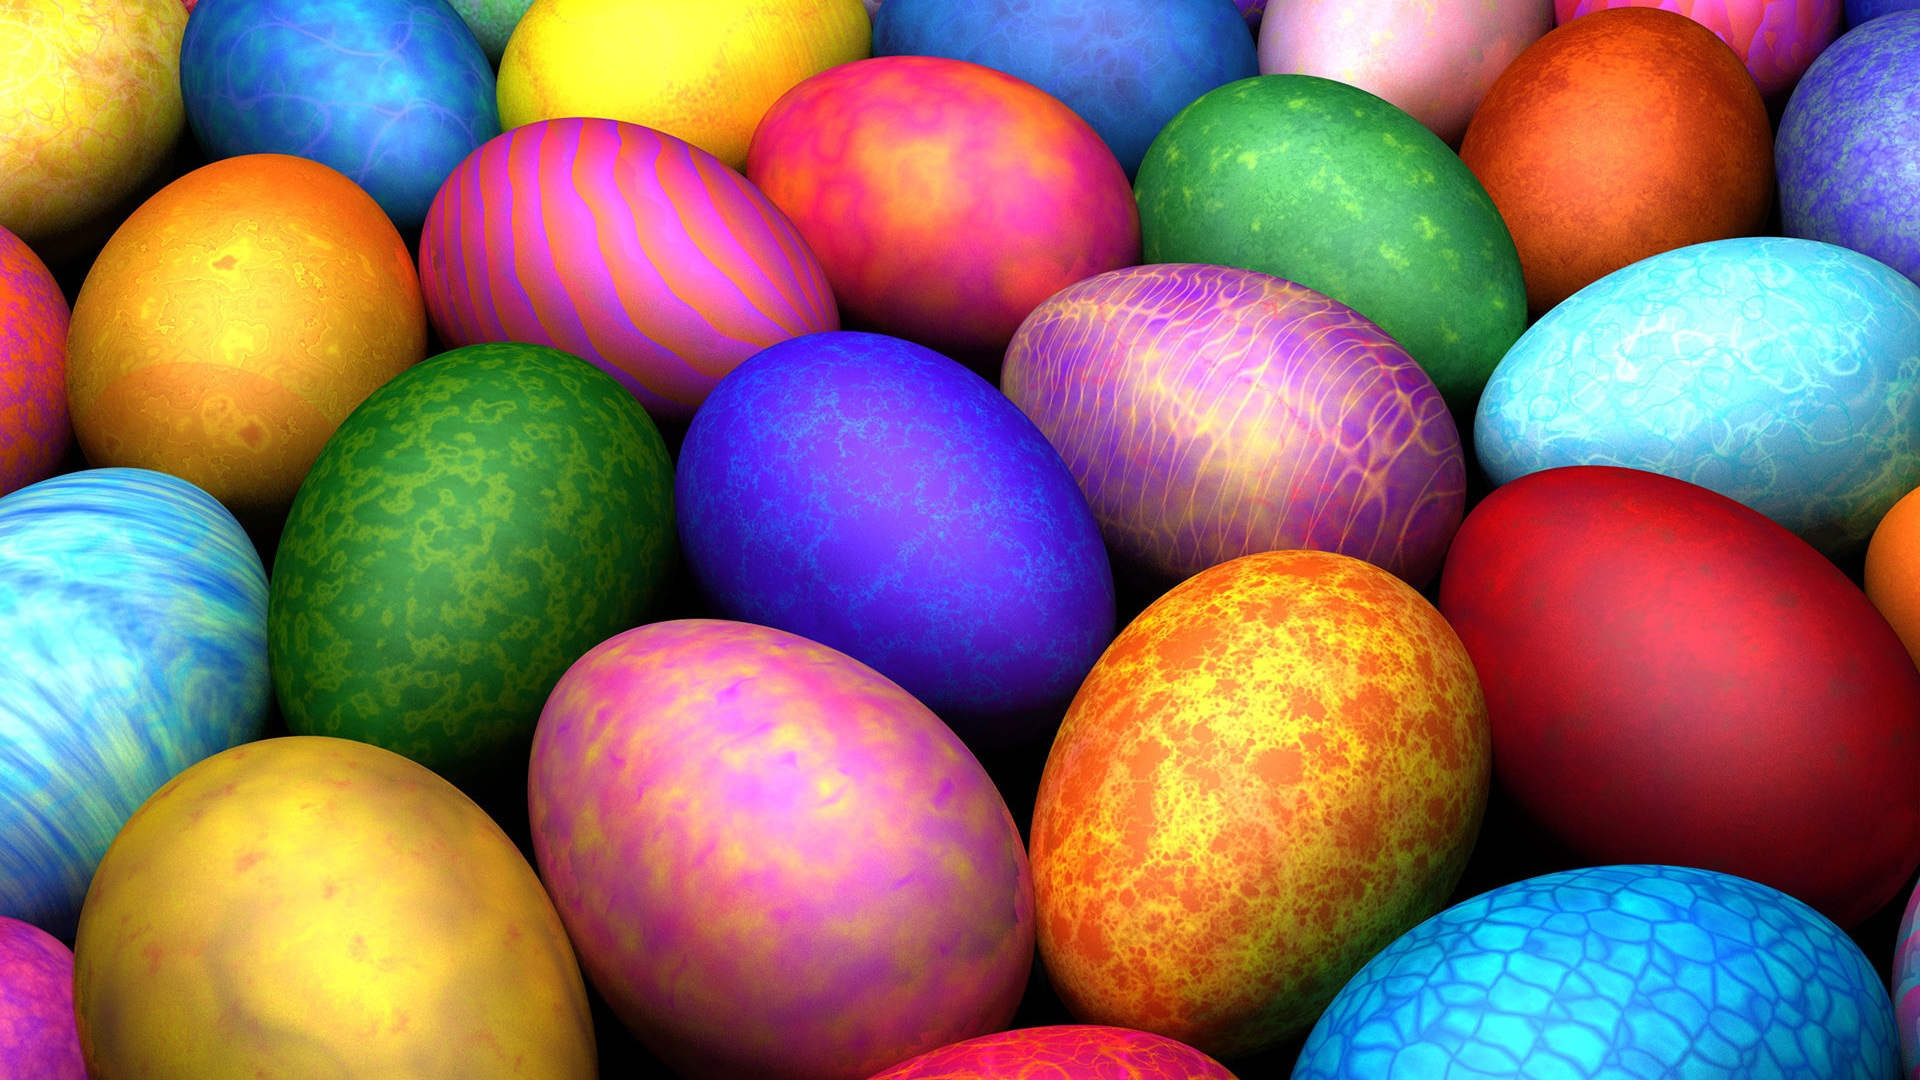 50 Beautiful Easter Wallpapers 1920x1080